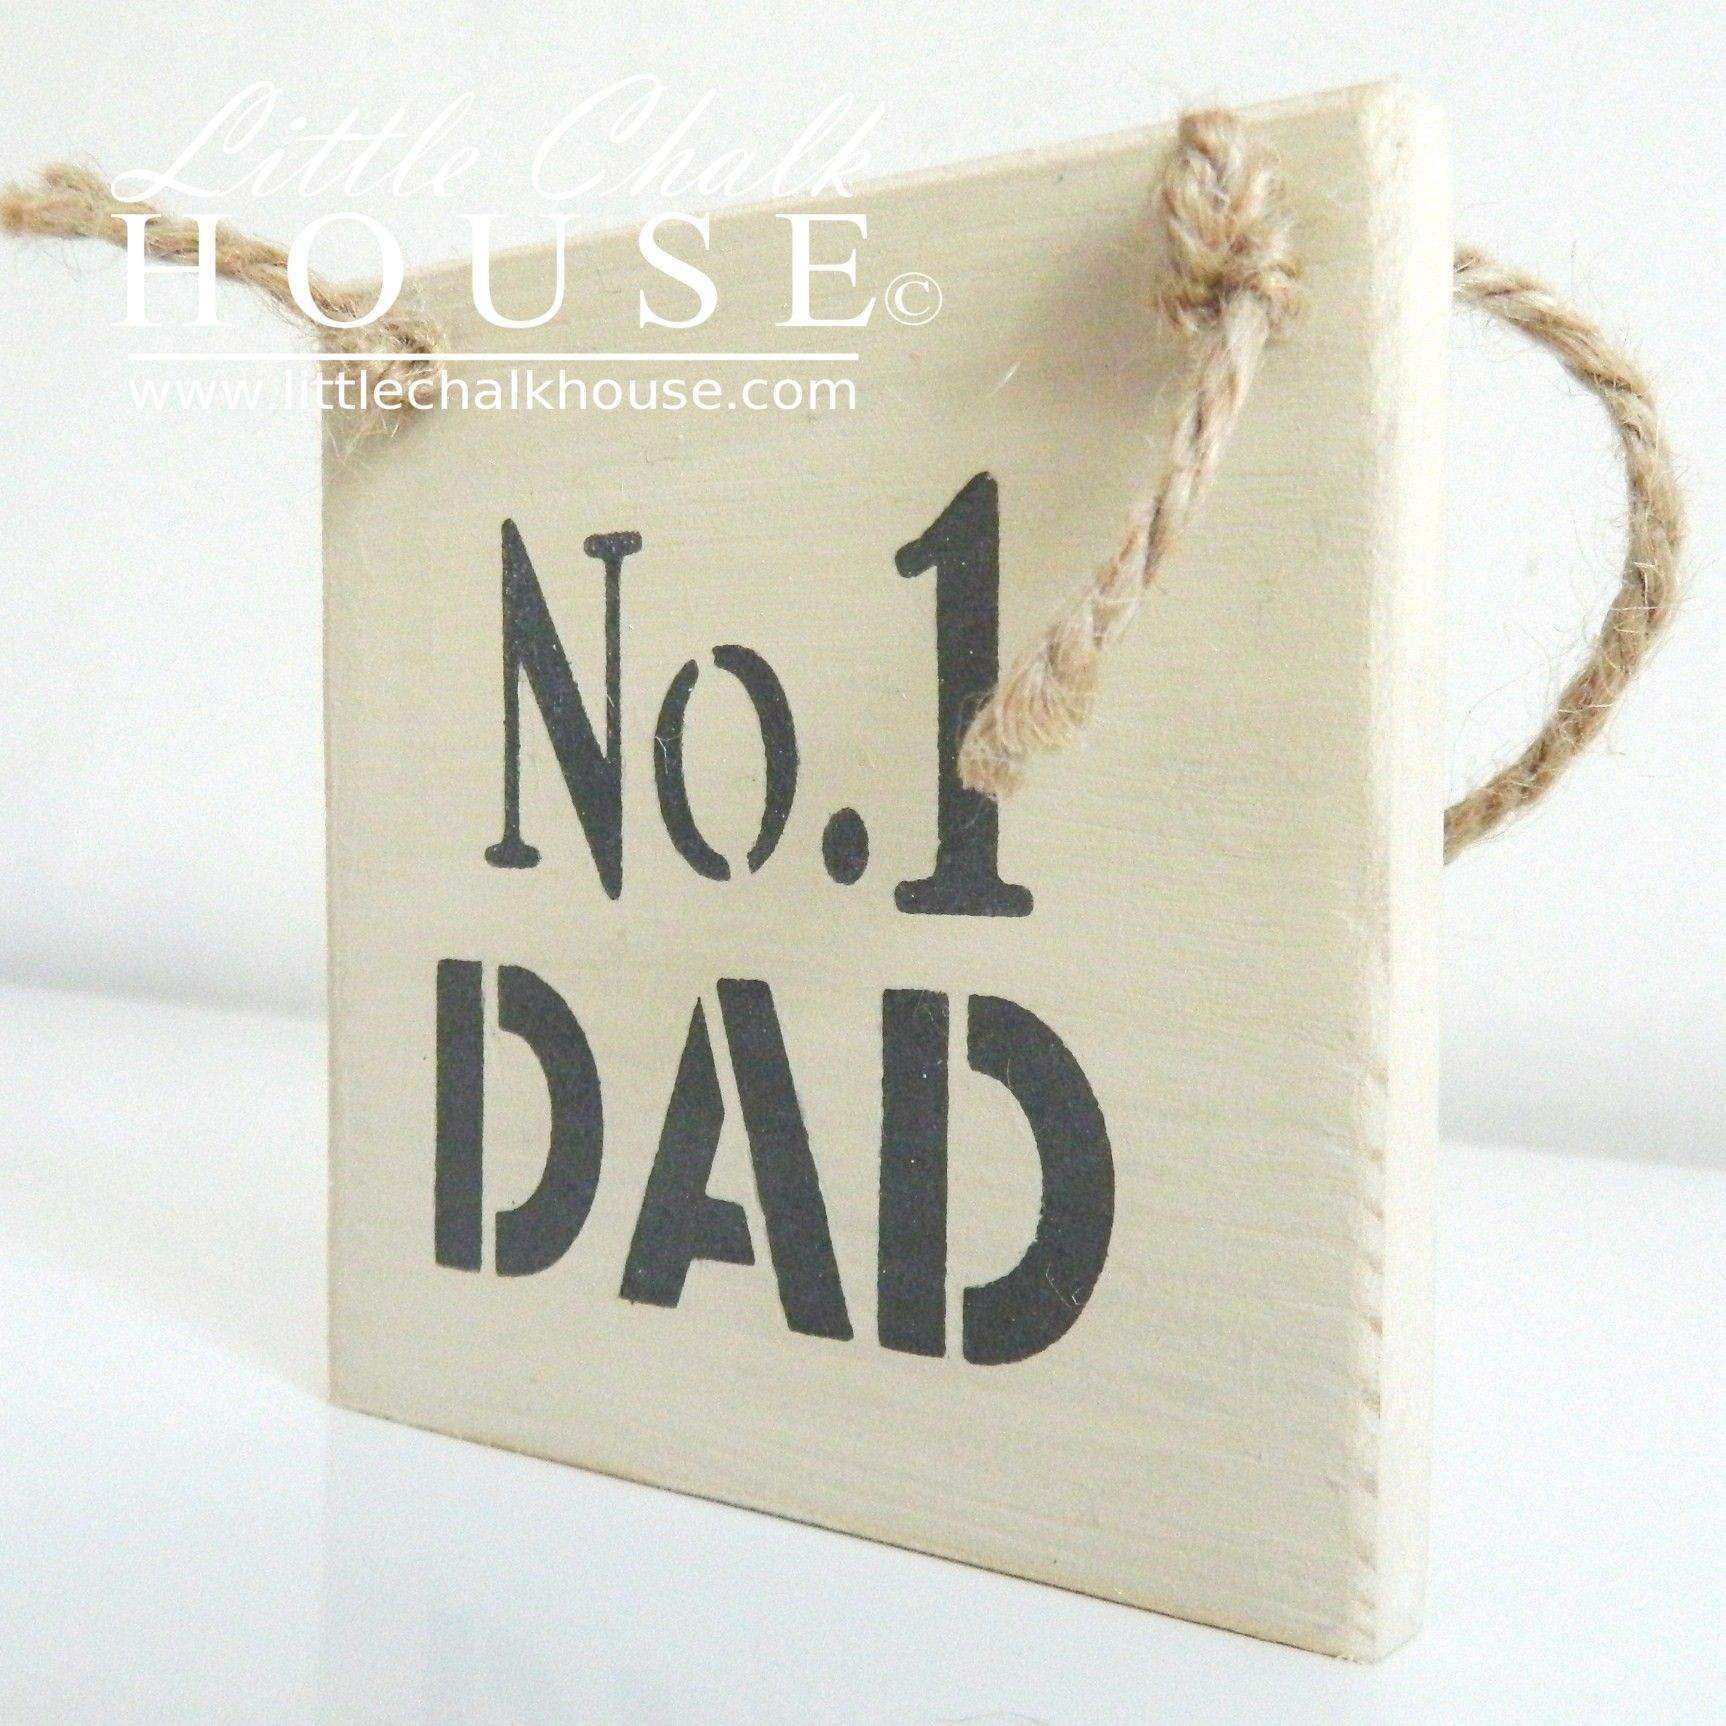 No. 1 Dad, small sign. Price £5.00 plus p&p, measures 9x9cm.  For more information please visit www.littlechalkhouse.com or www.facebook.com/littlechalkhouse